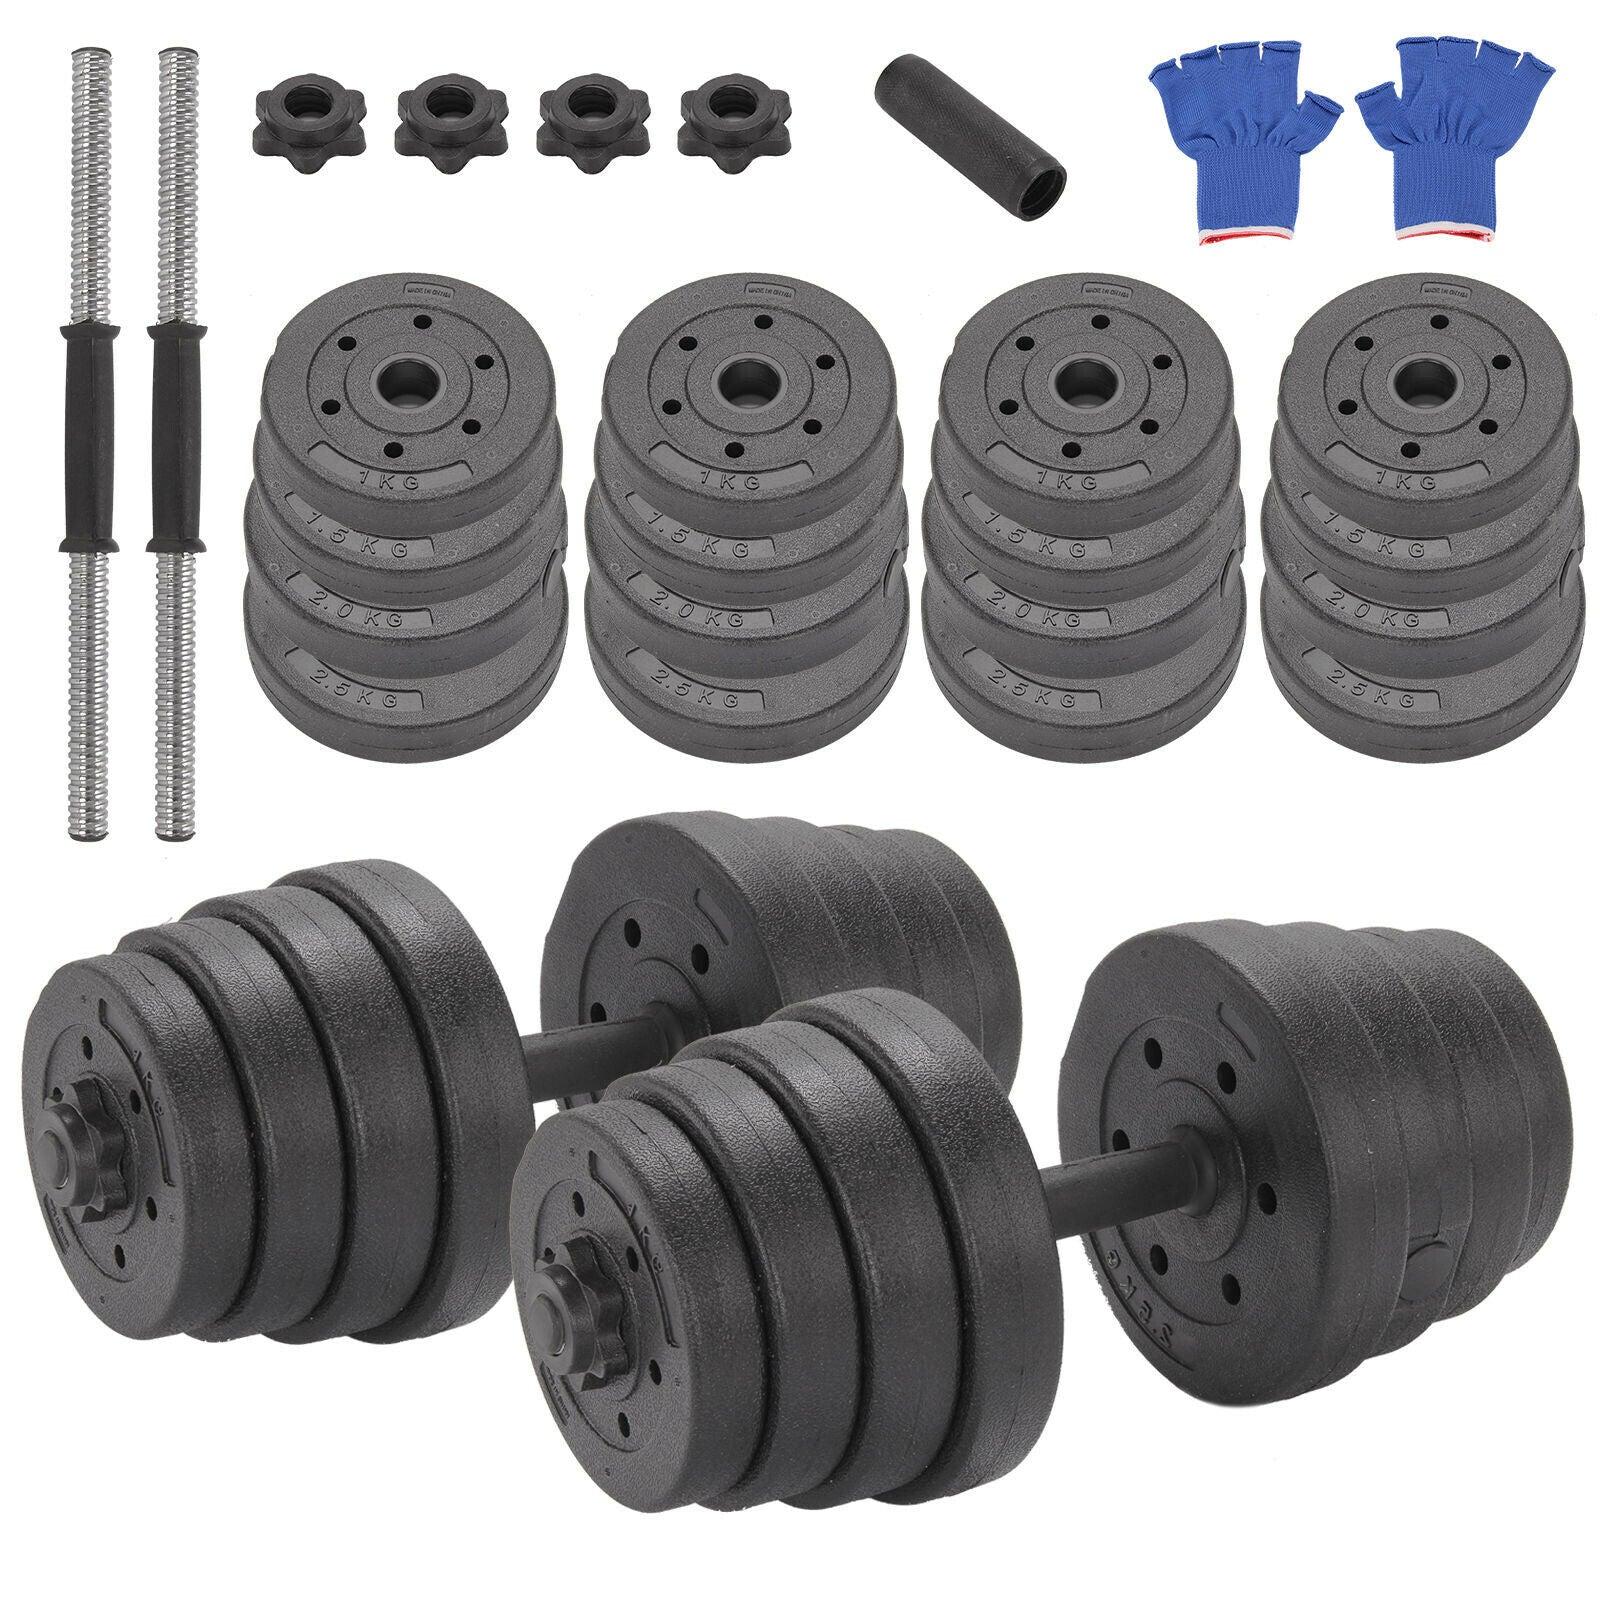 30Kg Dumbbells Pair of Weights Barbell/Dumbells Body Building Set Gym Kit